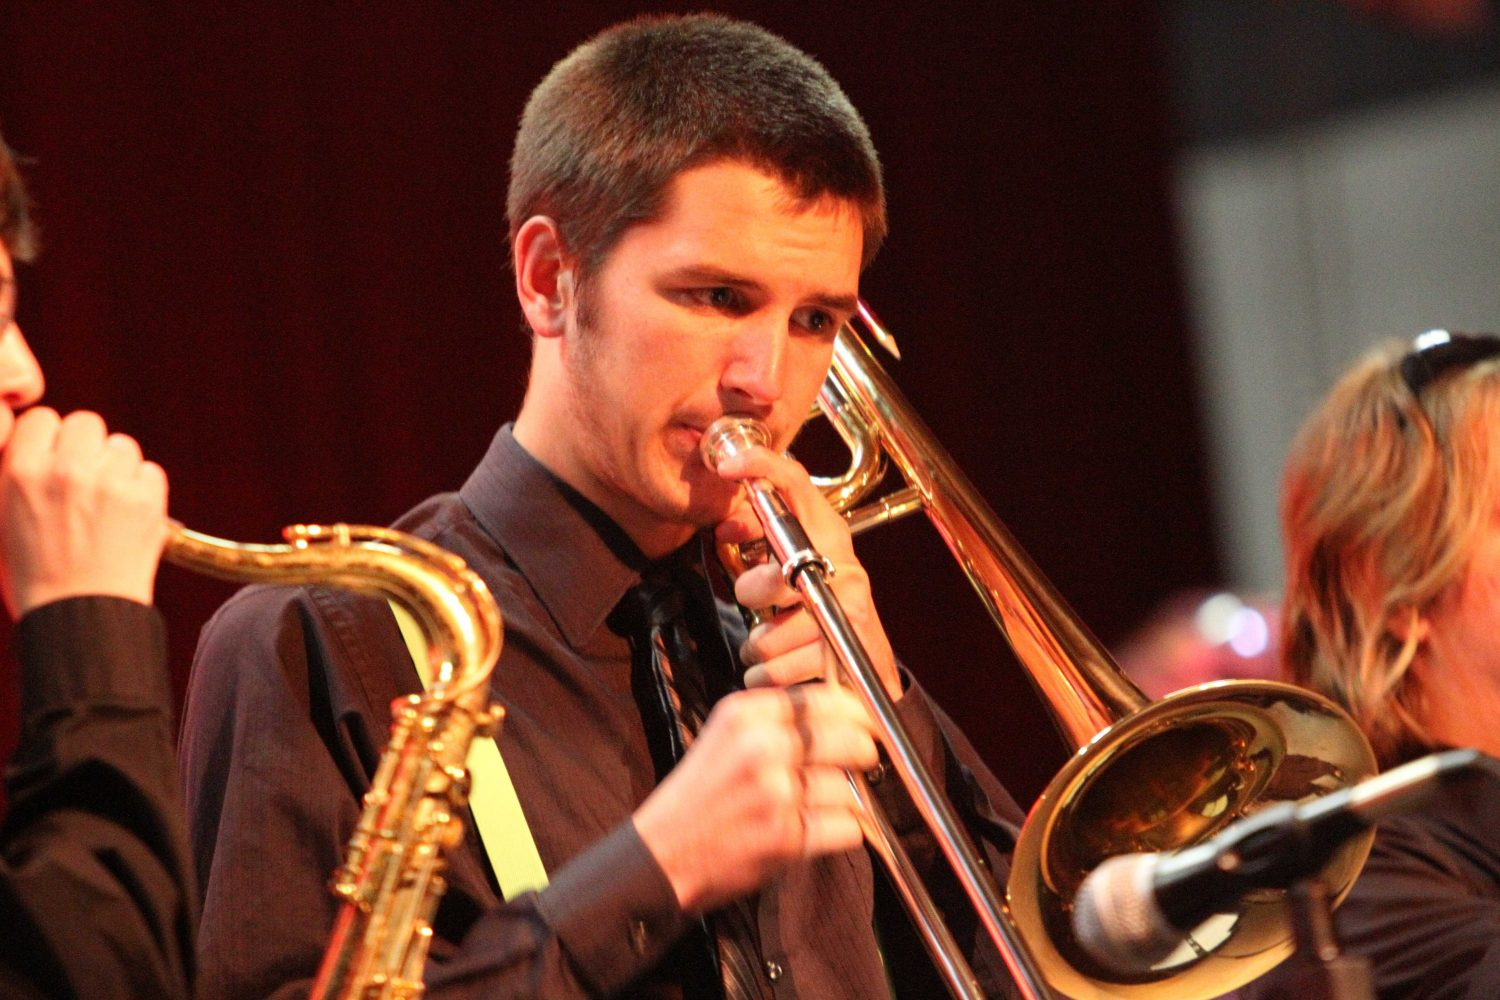 Alum+Mike+Lindsey+performs+his+trombone+during+the+winter+concert.+Lindsey+was+one+of+seven+students+to+make+All+State+Band.